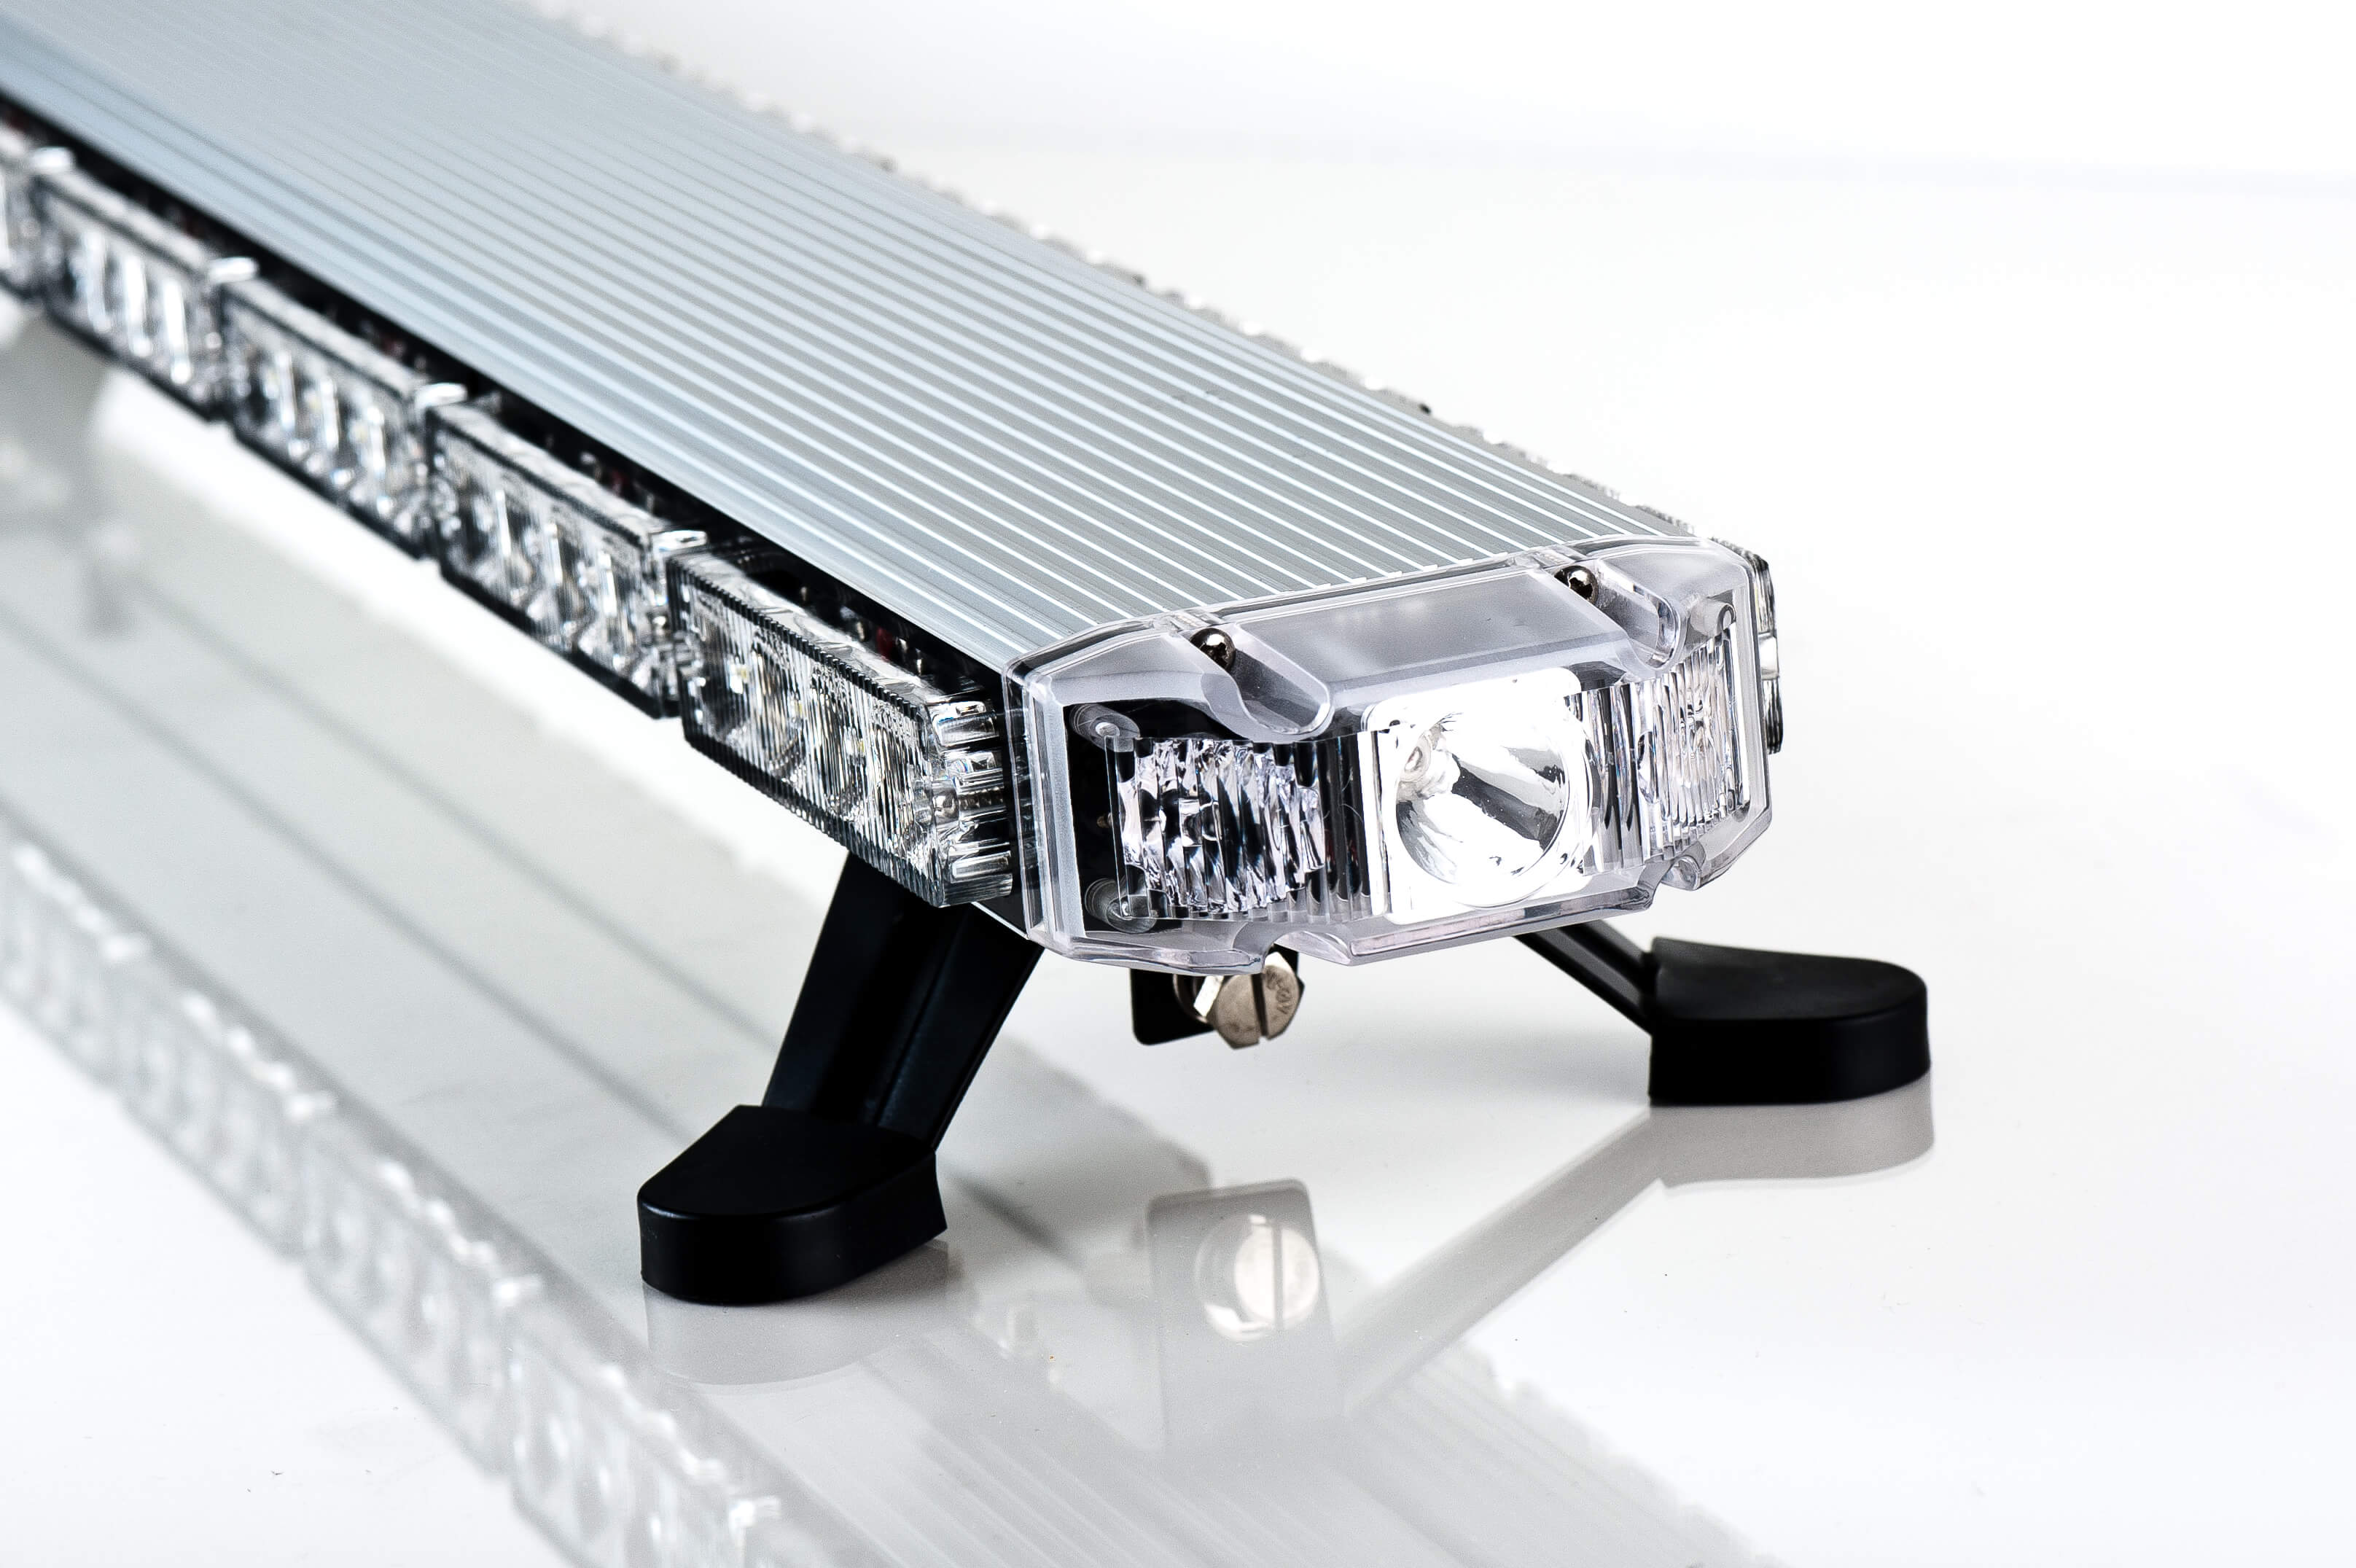 40 Razor Tir Light Bars Police Light Bars Led Outfitters